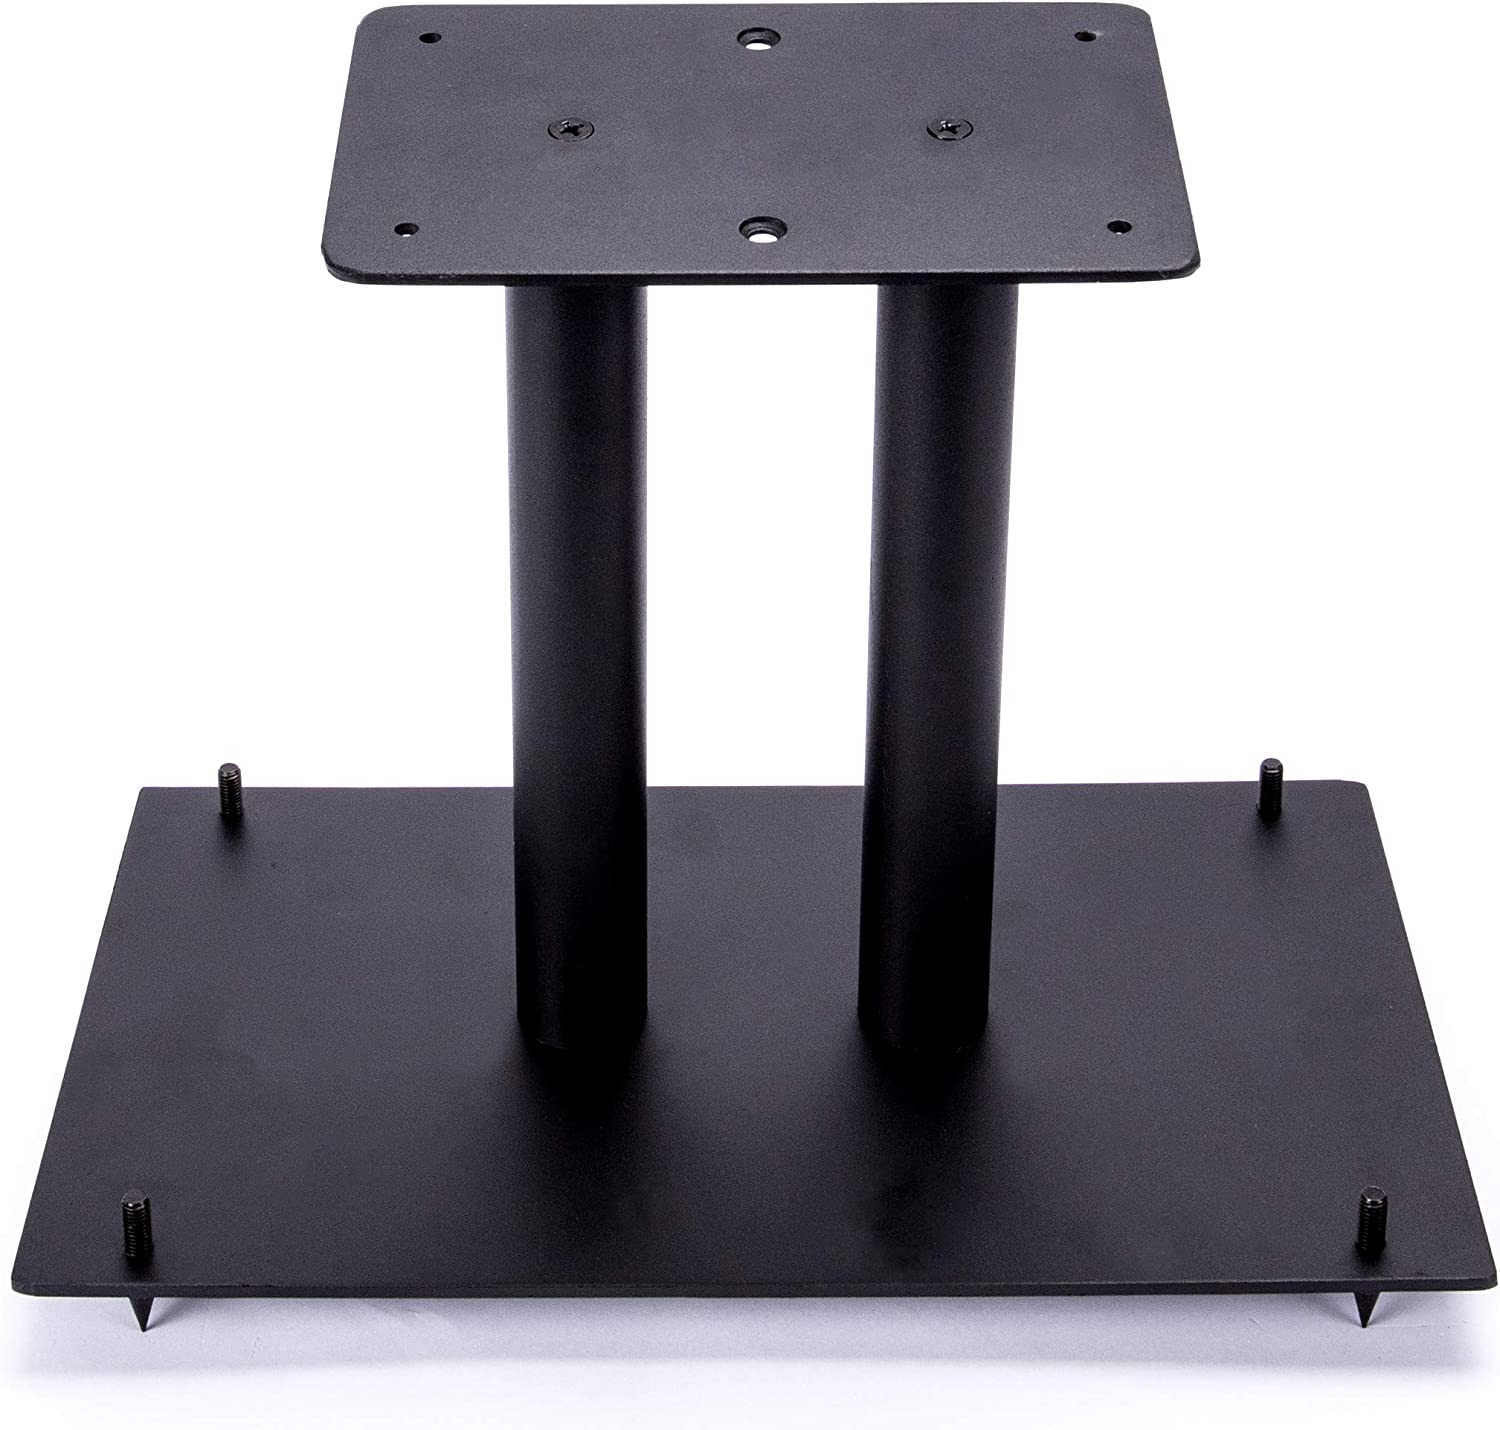 "13"" Heavy Duty, Steel Center Channel Speaker Stand   Fillable   For Medium to Large Speakers   Comes with Steel Carpet Spikes   By Vega A V Systems   15.5"" x 9.5"" Base, 5.5"" x 9"" Speaker Pedestal"